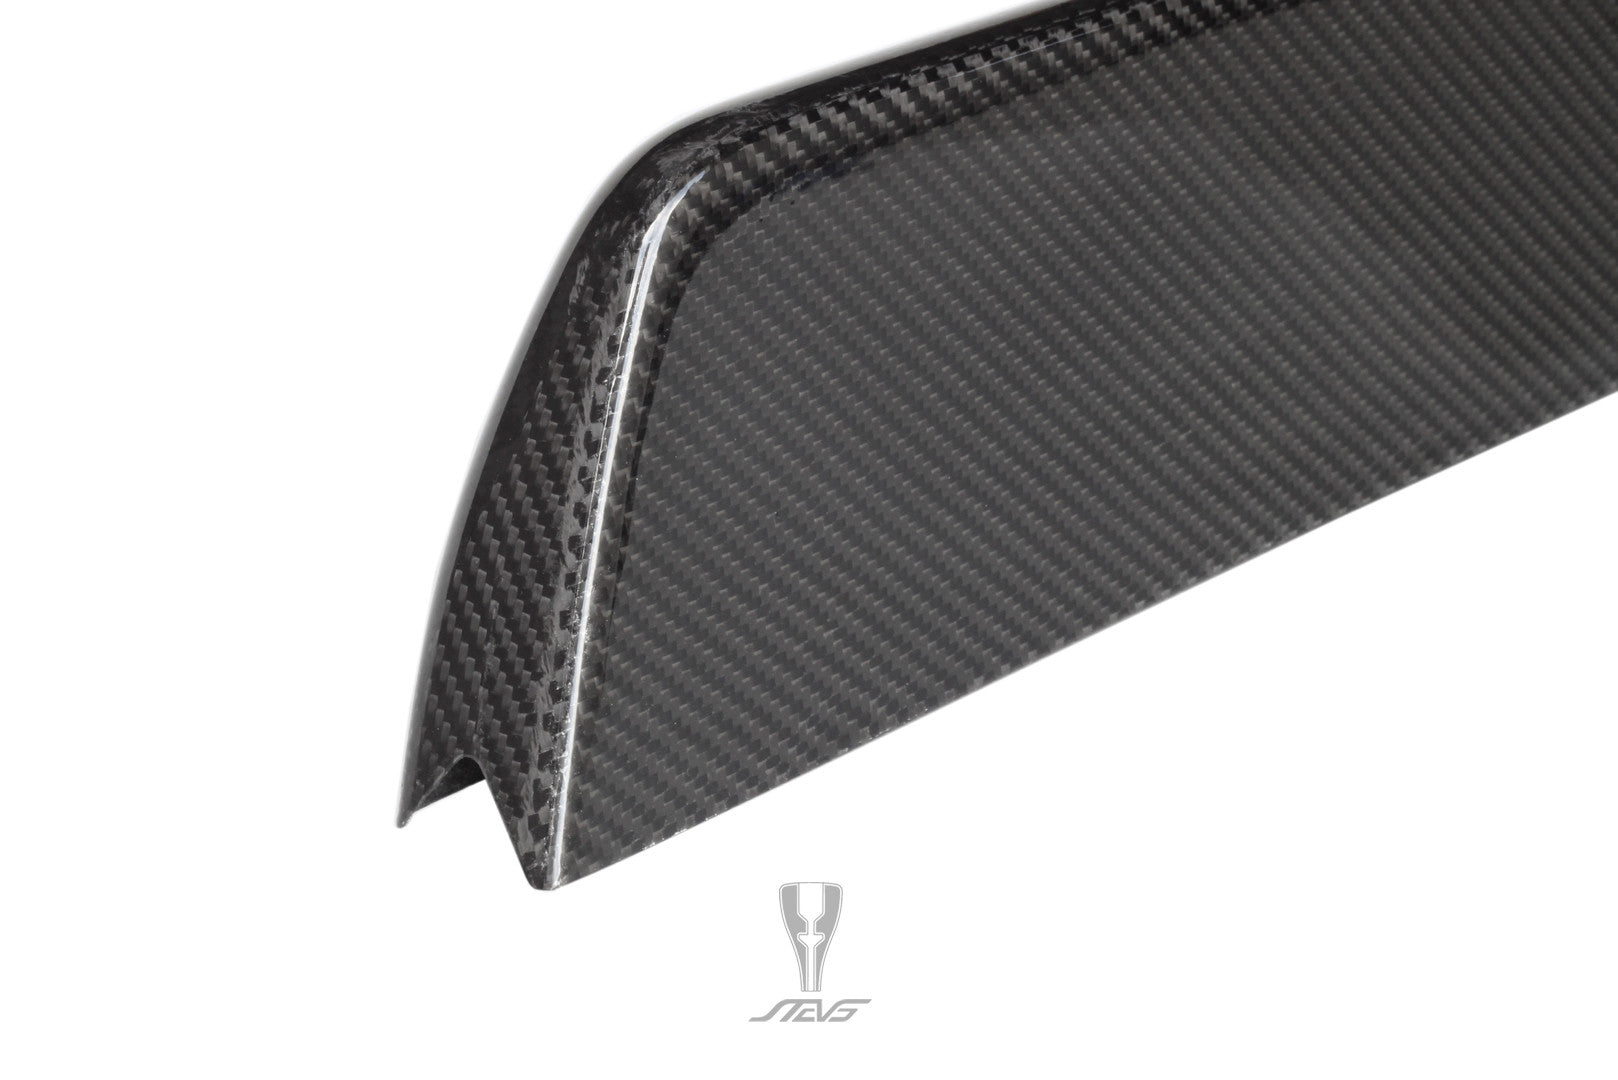 STEVS Crown carbon fiber wing extension, front angle detail view